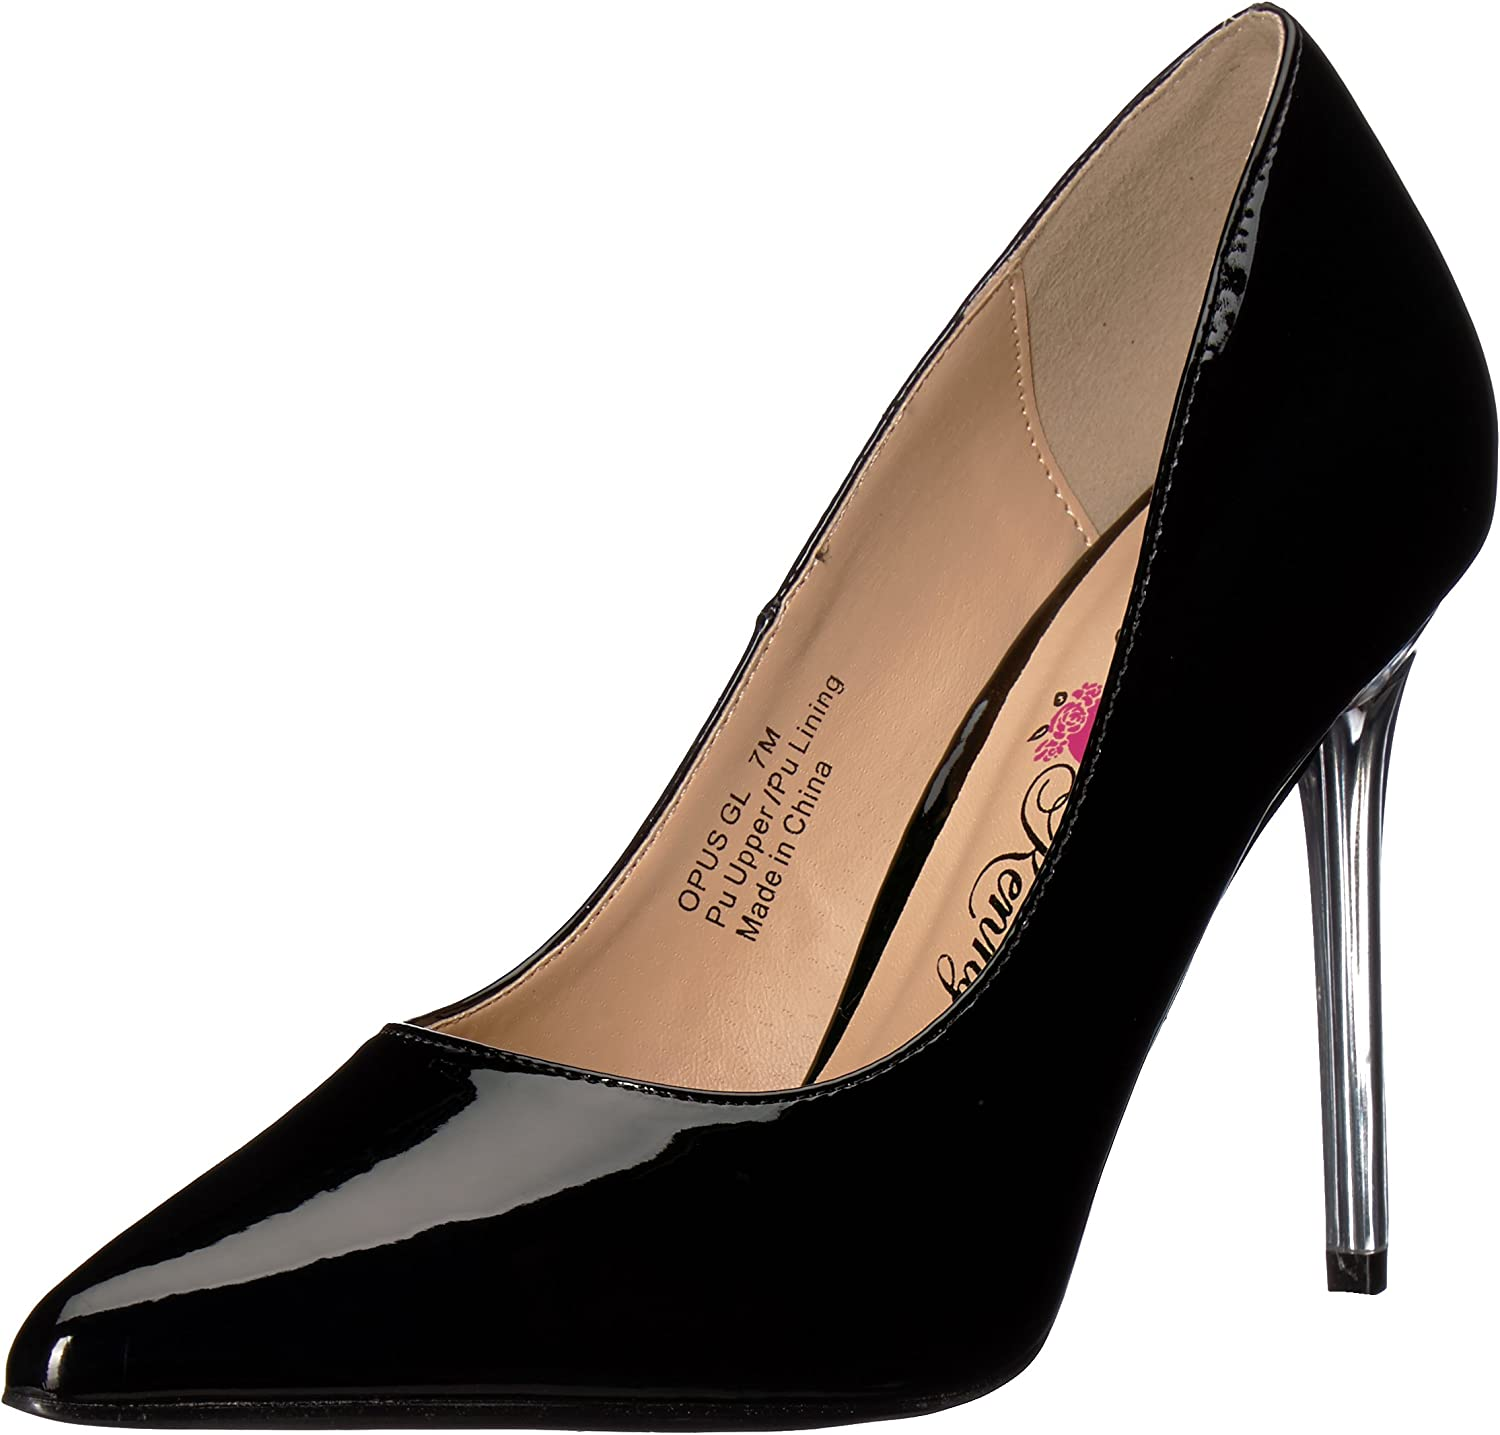 Penny Loves Cheap super Selling rankings special price Kenny Women's Pump Opus Gl